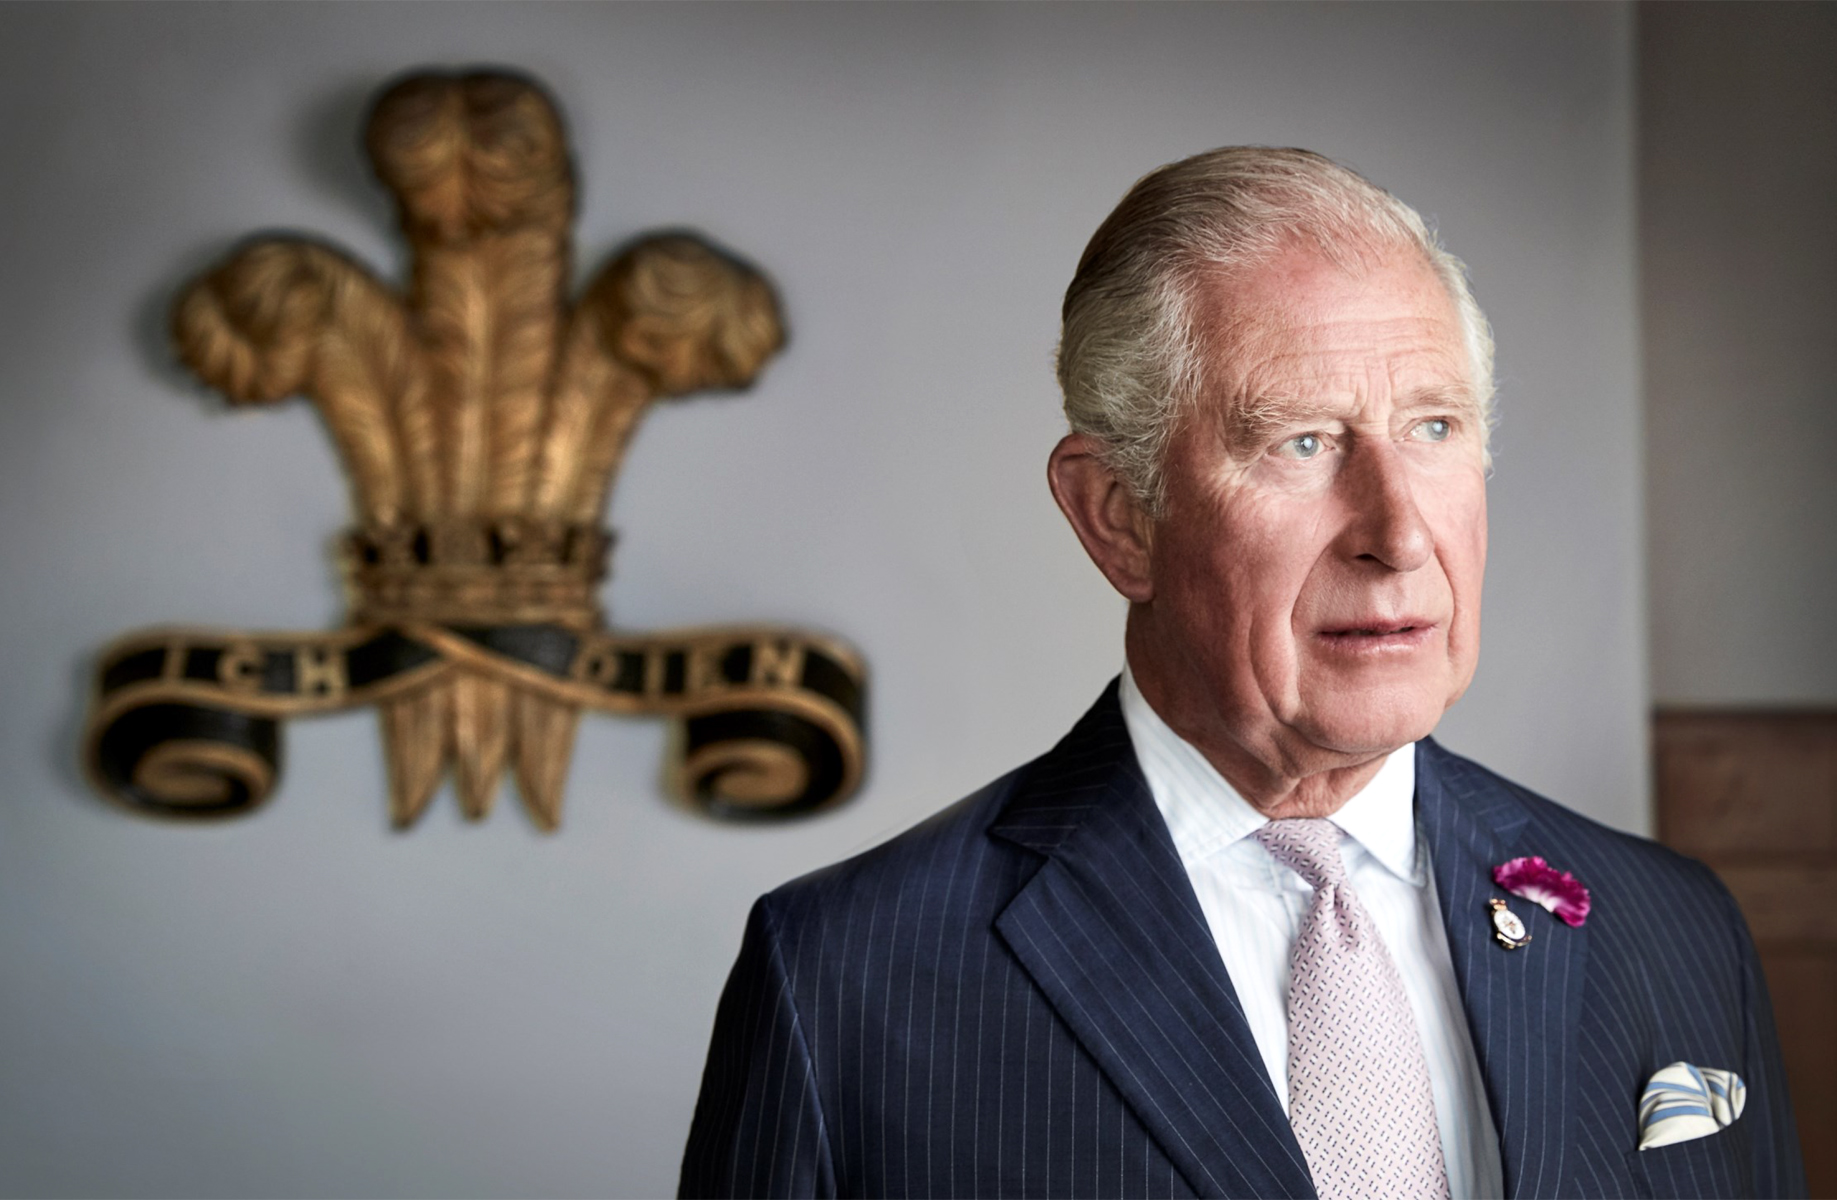 Prince Charles, The Prince of Wales